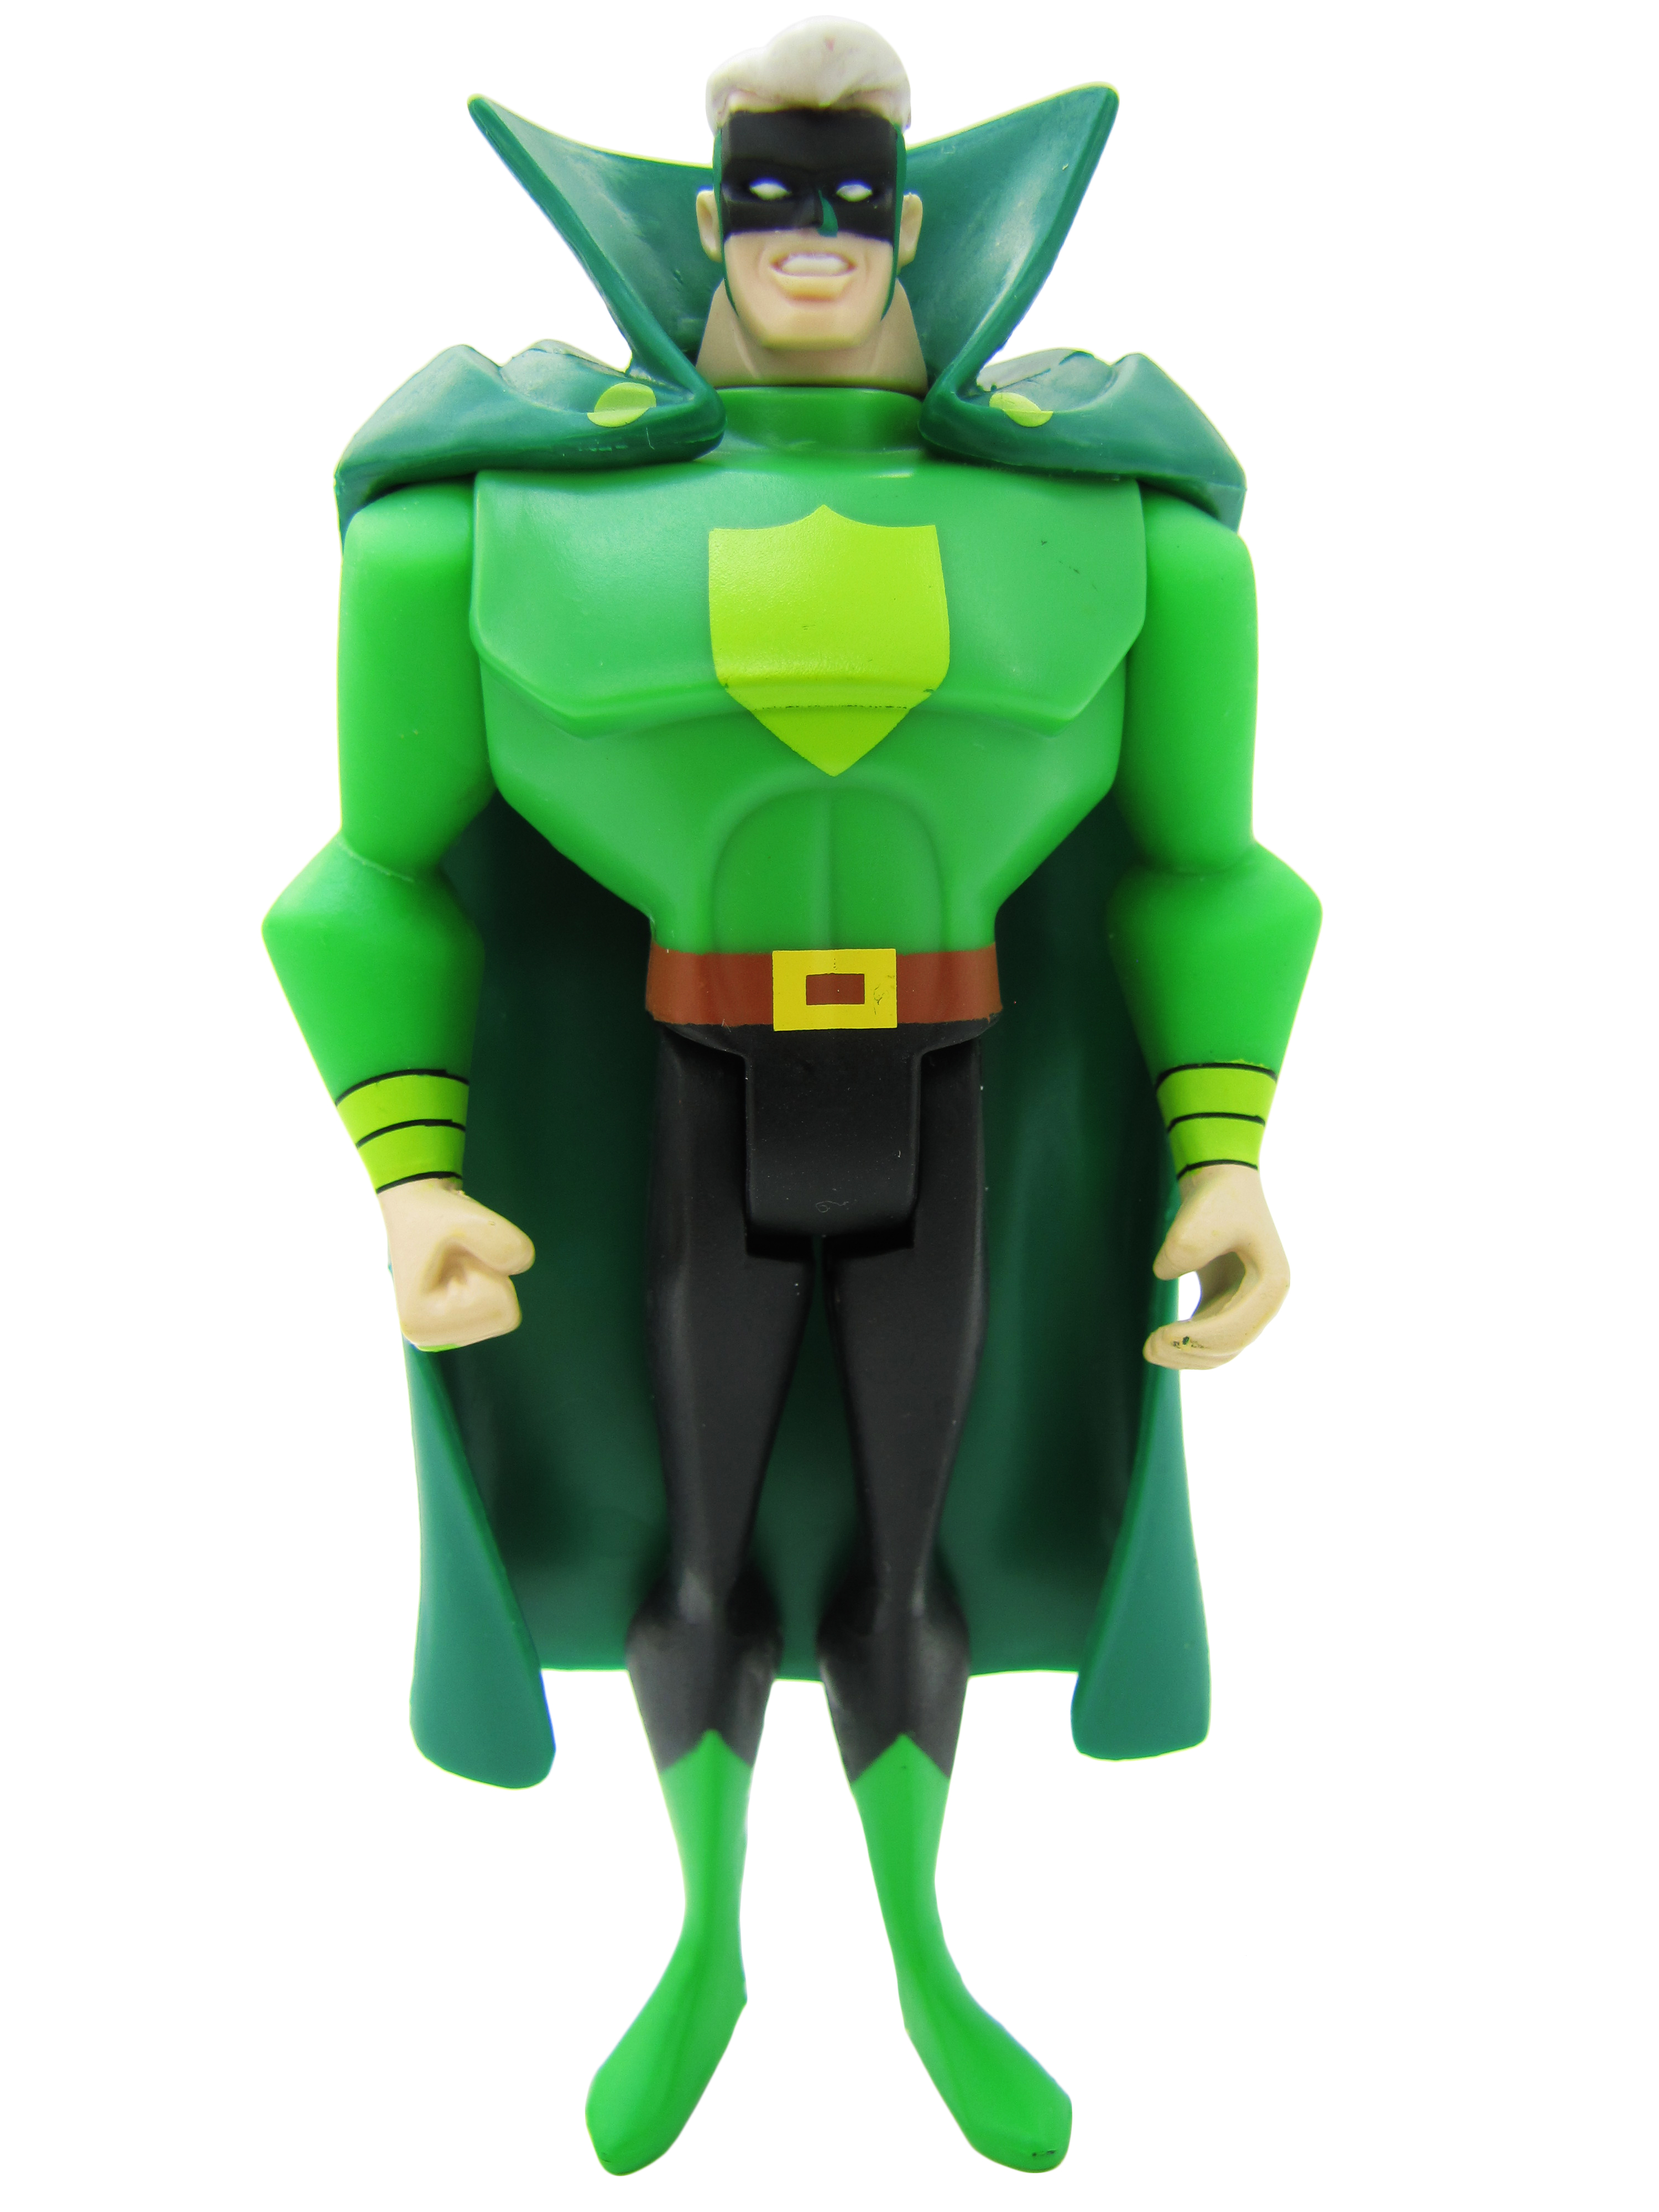 2009 Justice League Unlimited MATTY COLLECTOR JUSTICE GUILD GREEN GUARDSMAN Mint